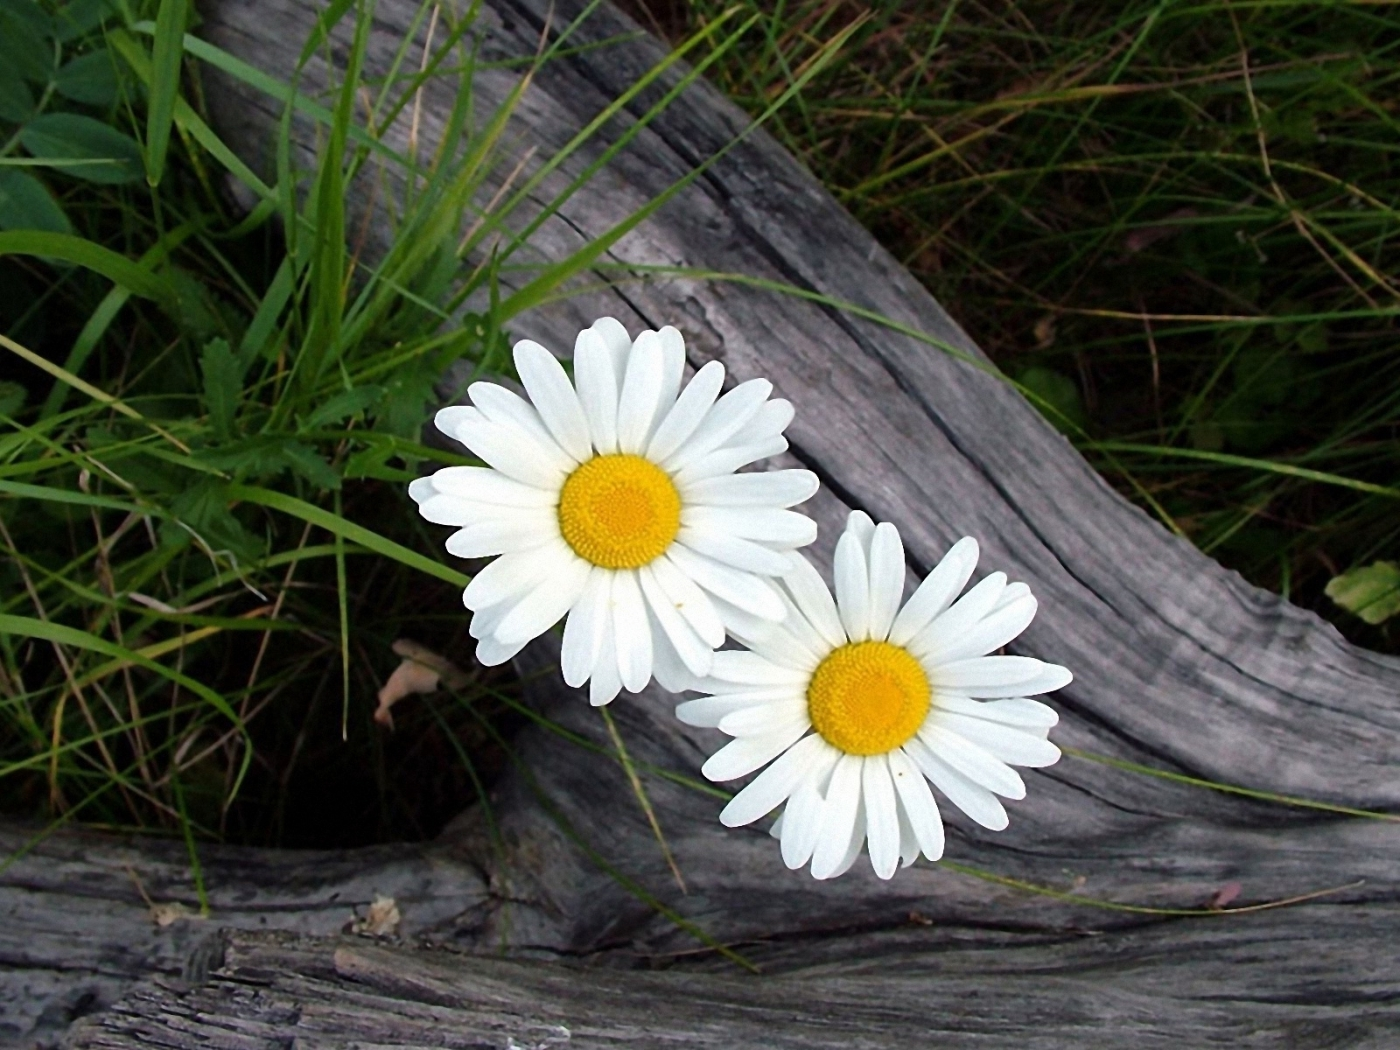 44760 download wallpaper Plants, Flowers, Camomile screensavers and pictures for free